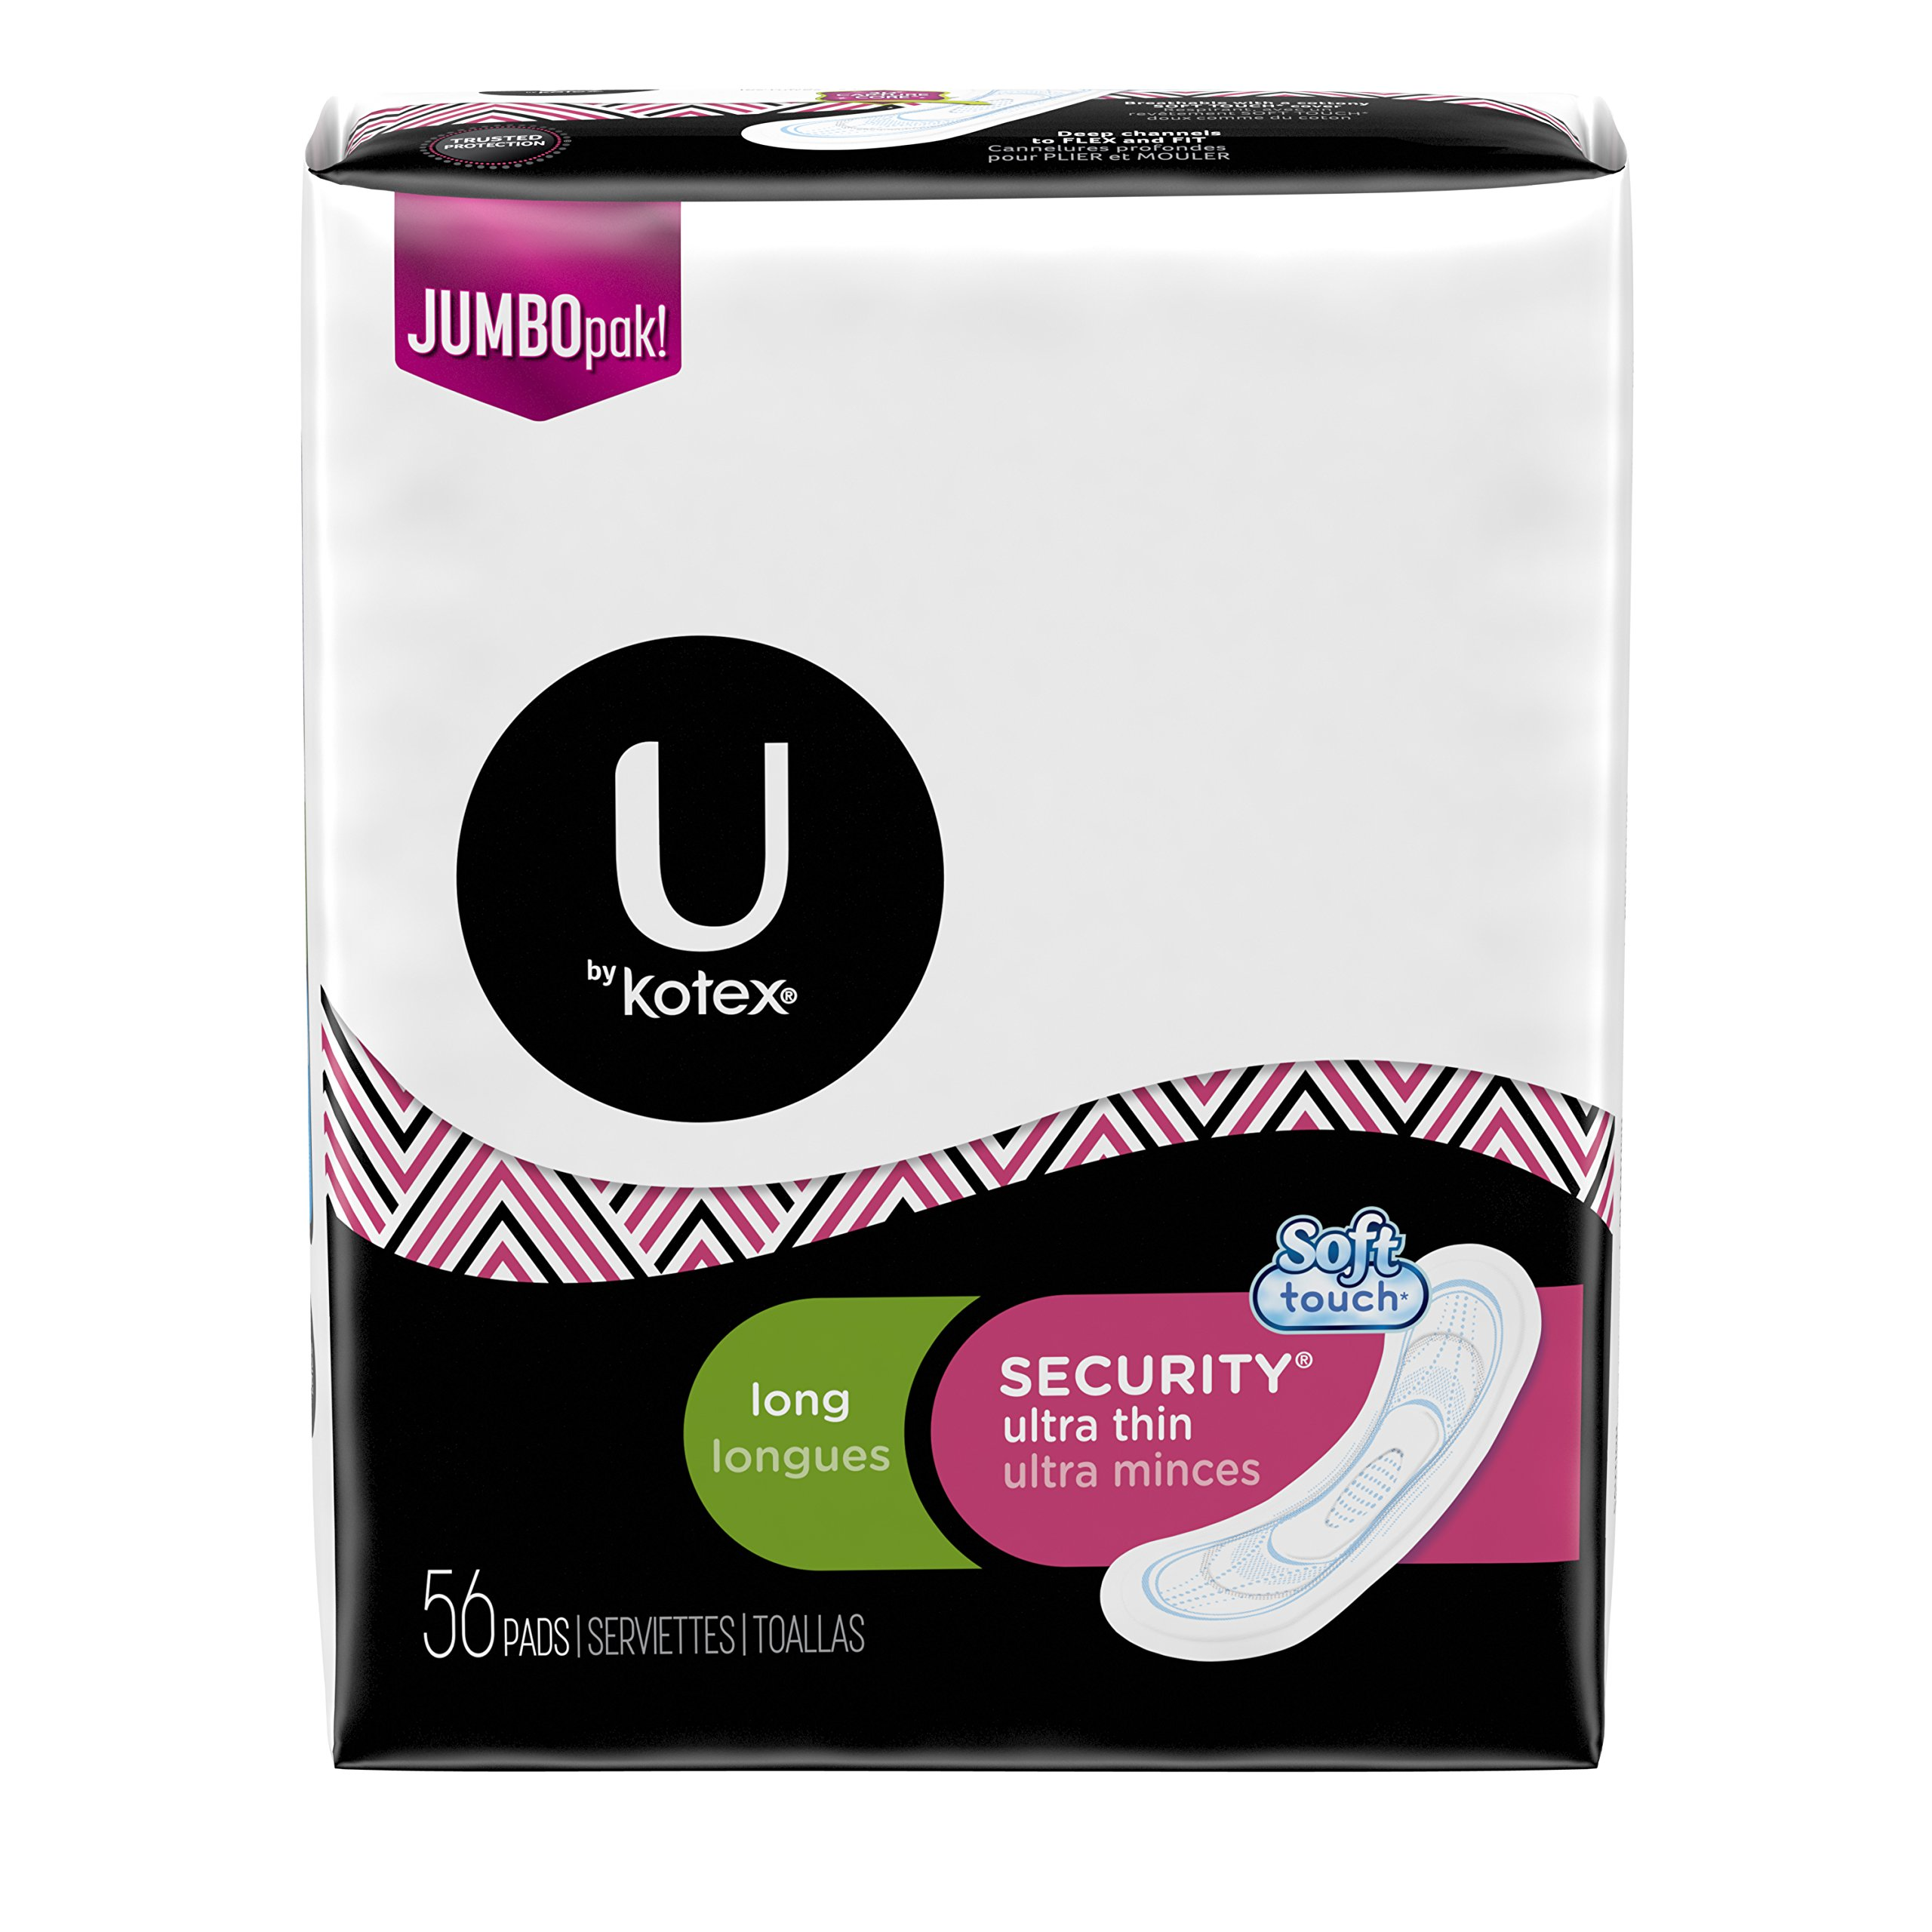 U by Kotex Security Ultra Thin Pads, Long, Fragrance-Free, 56 Count